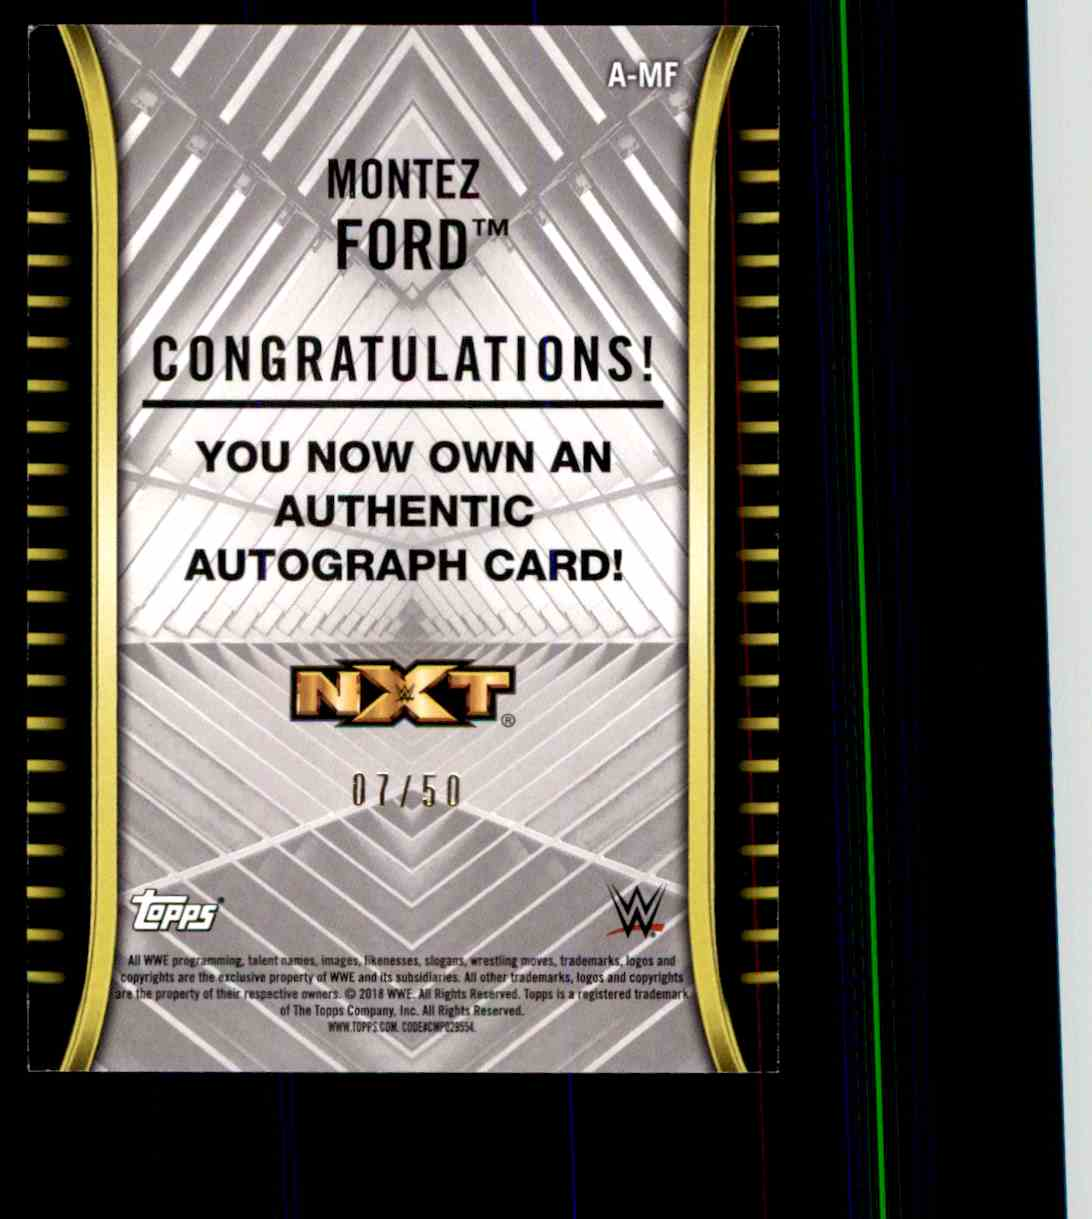 2018 Topps Wwe Nxt Montez Ford card back image